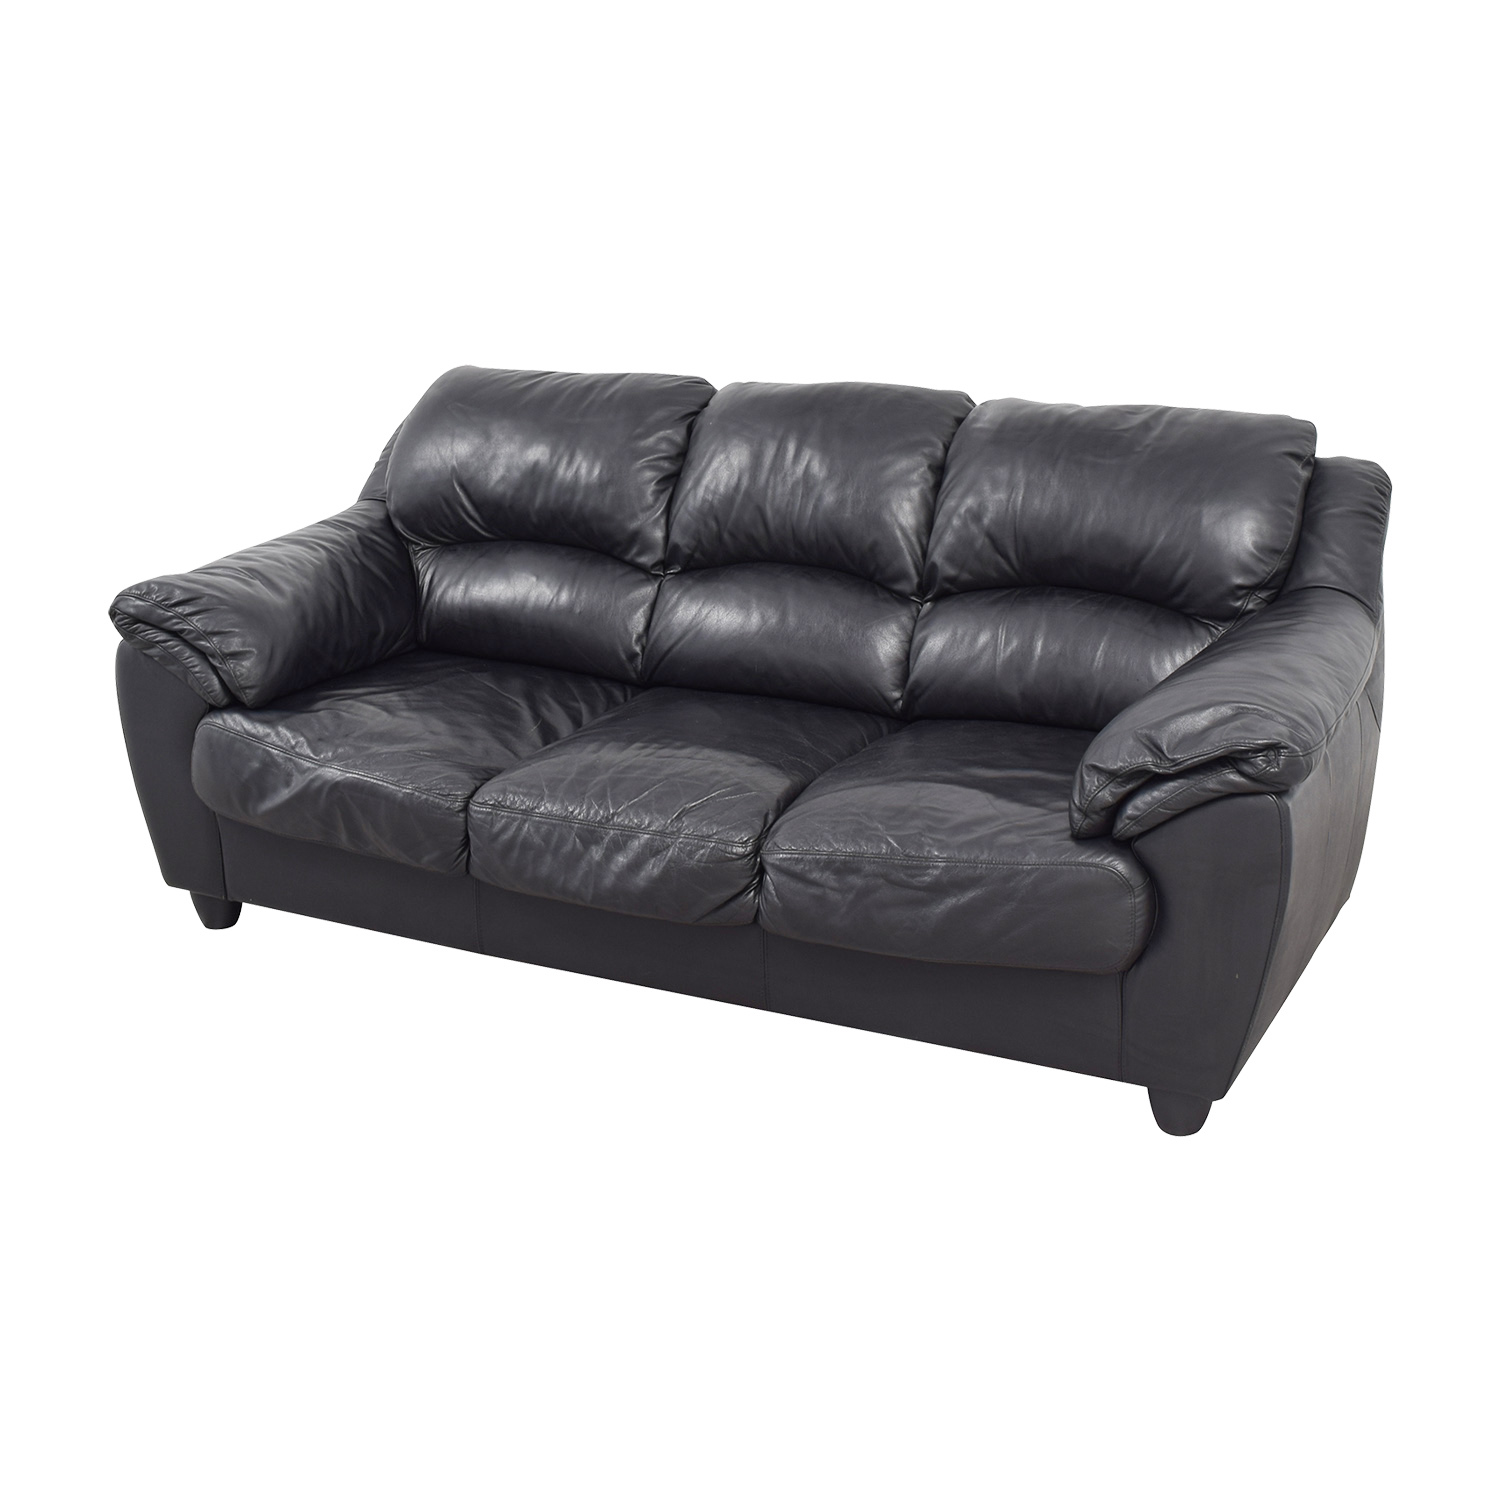 Astounding 90 Off Raymour Flanigan Raymour Flanigan Black Leather Couch Sofas Short Links Chair Design For Home Short Linksinfo